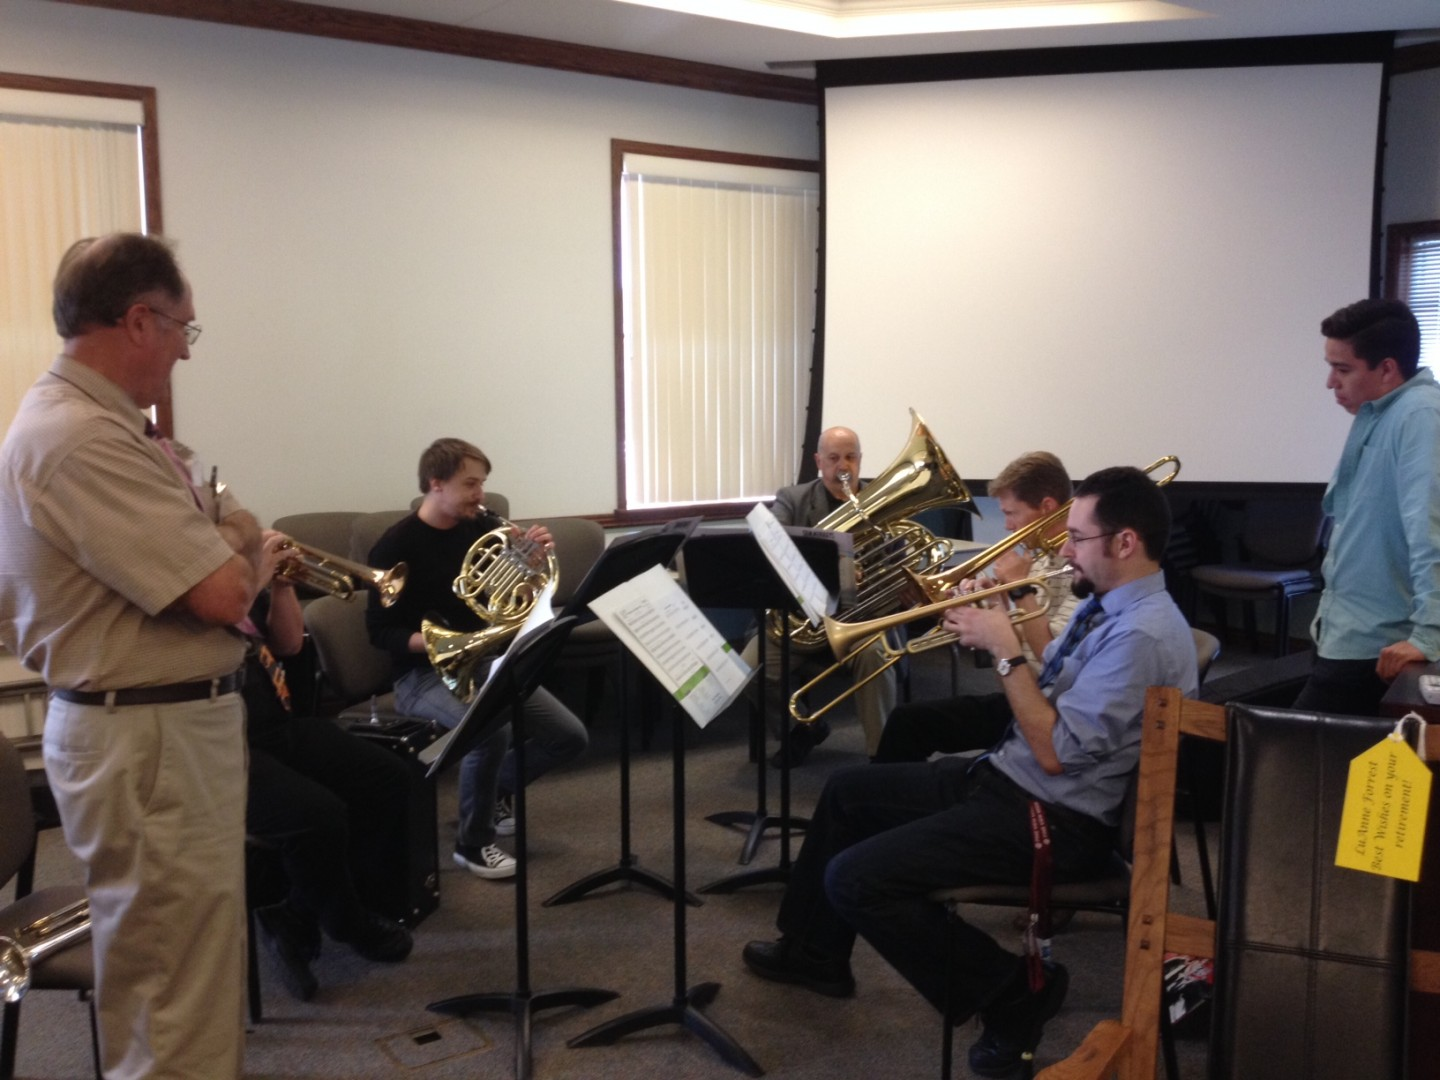 Ferron Holt watches a jazz band made up of former students and colleagues at a reception honoring retiring Washington County School District employees at the District Office. St. George, Utah, May 7, 2014 | Photo by Hollie Reina, St. George News